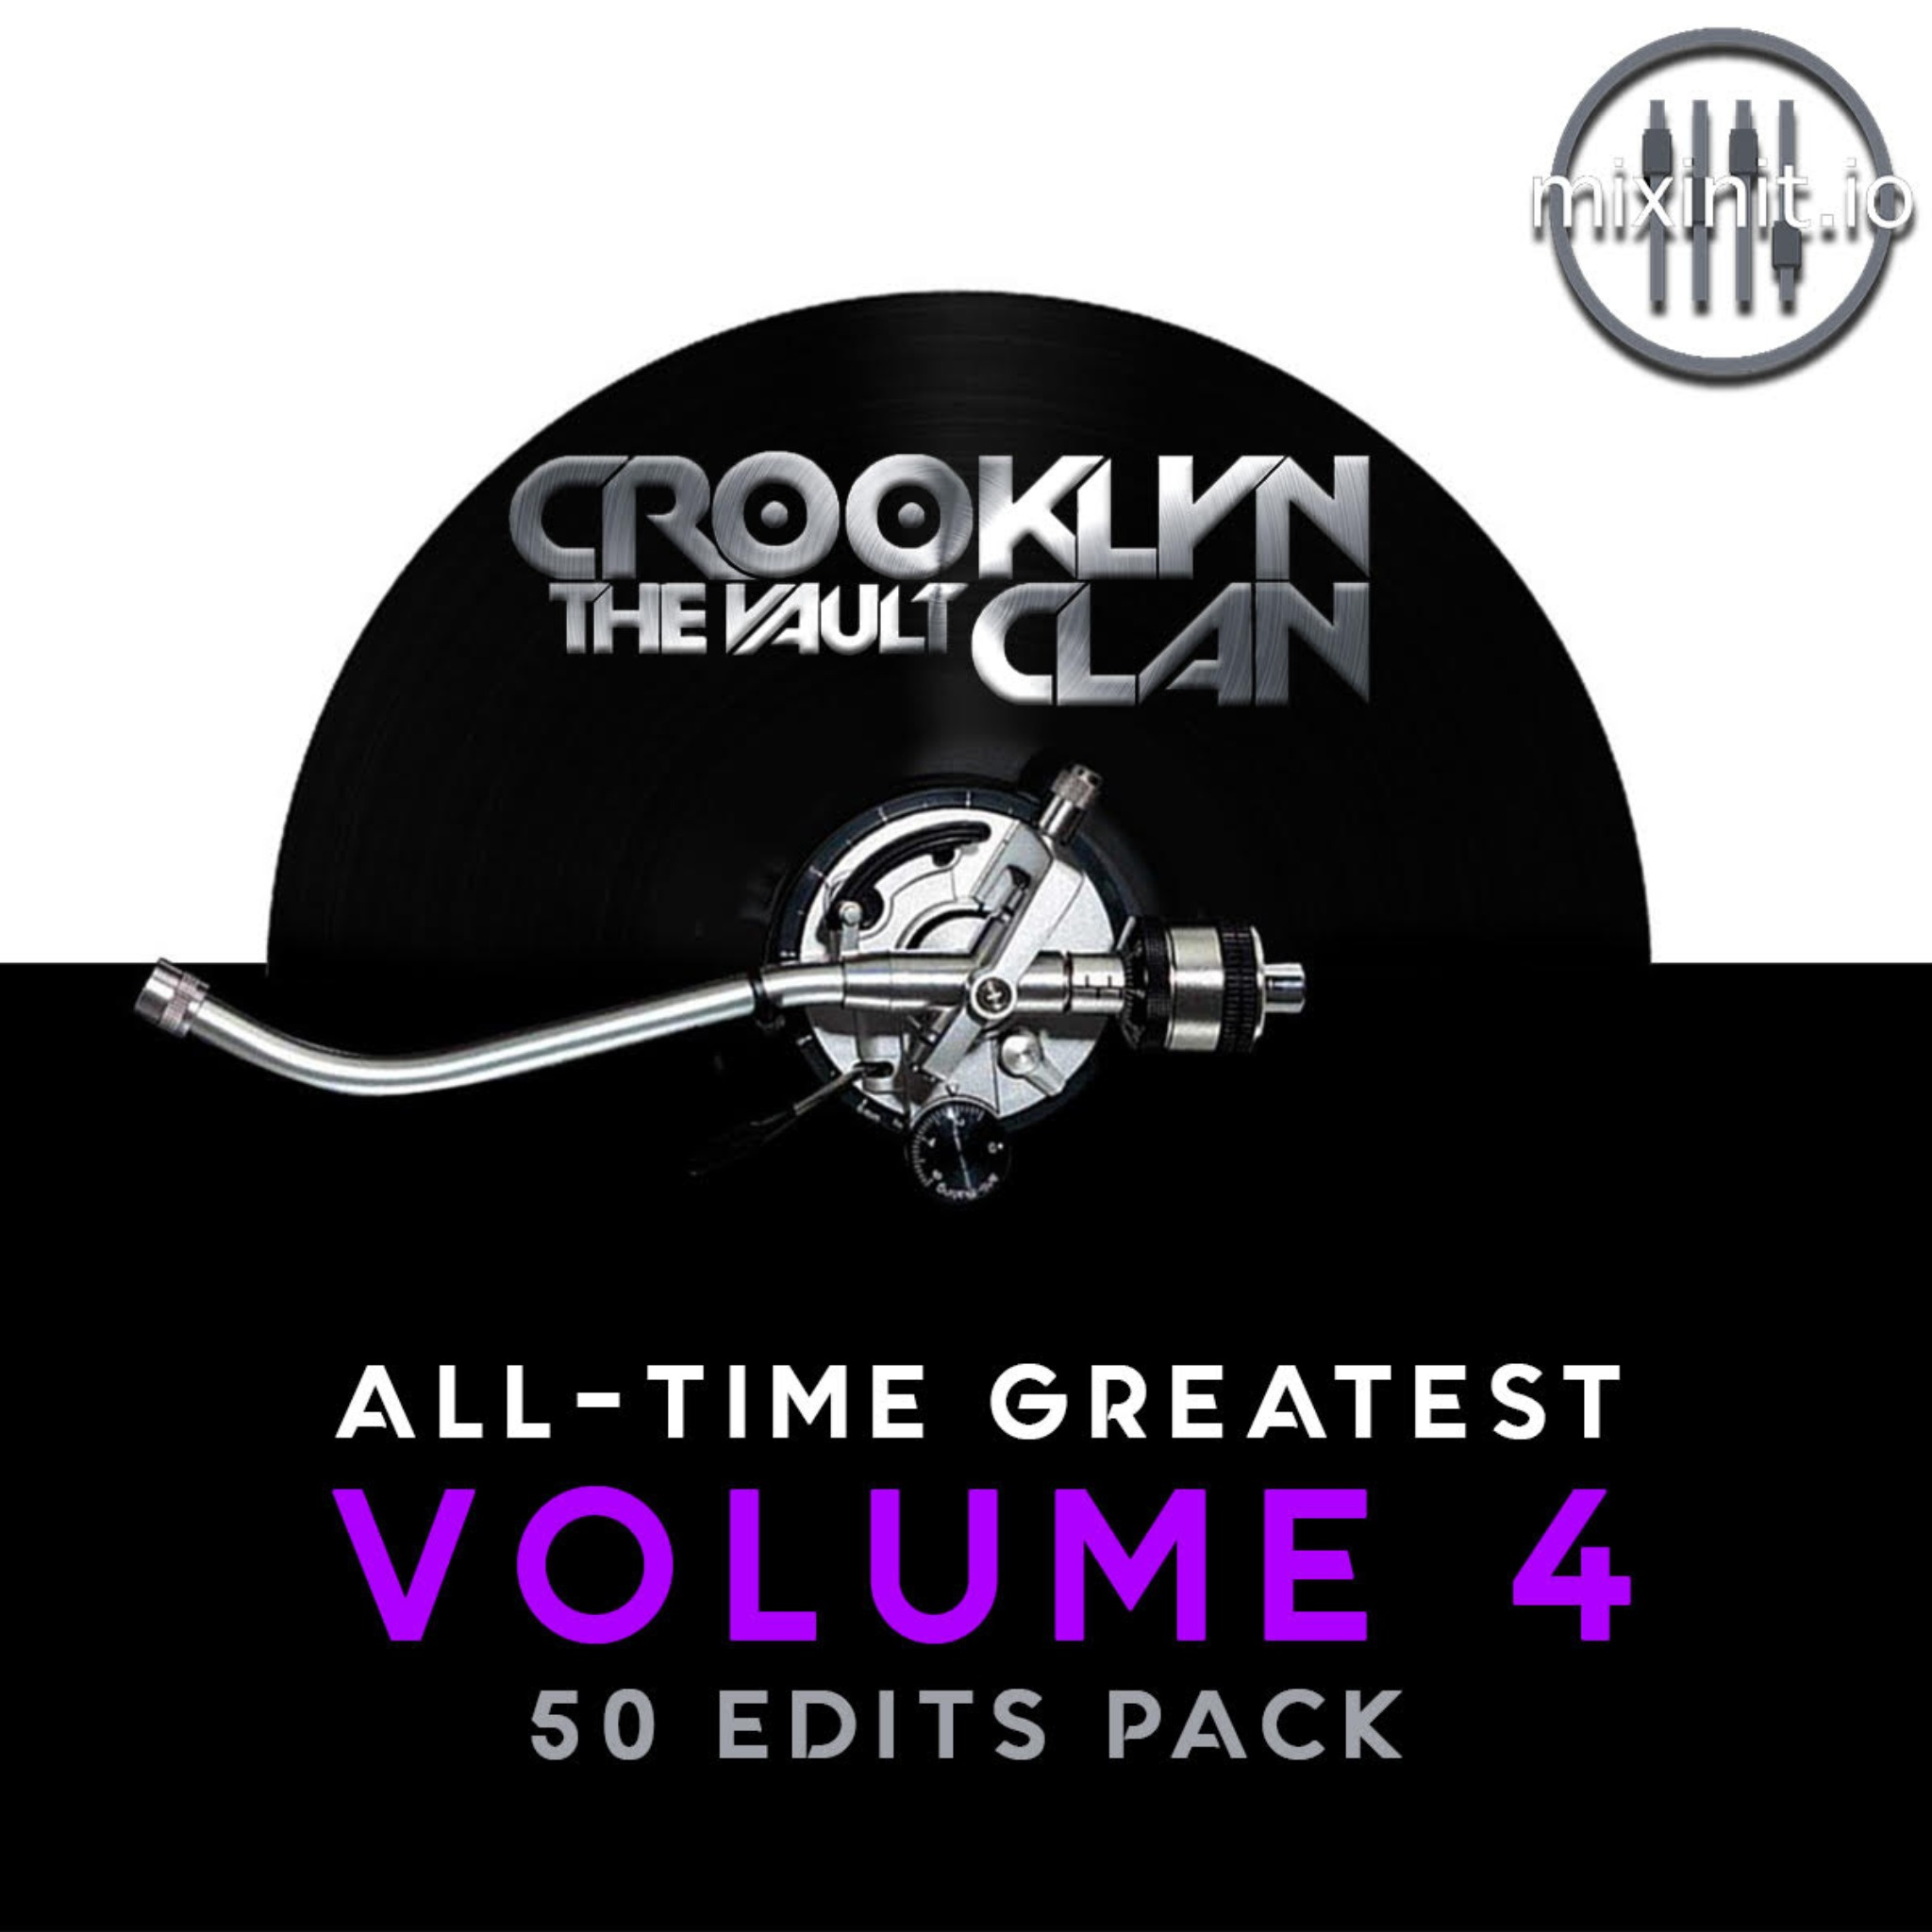 Best Of The Crooklyn Clan Vault Vol. 4 (Various Editors)